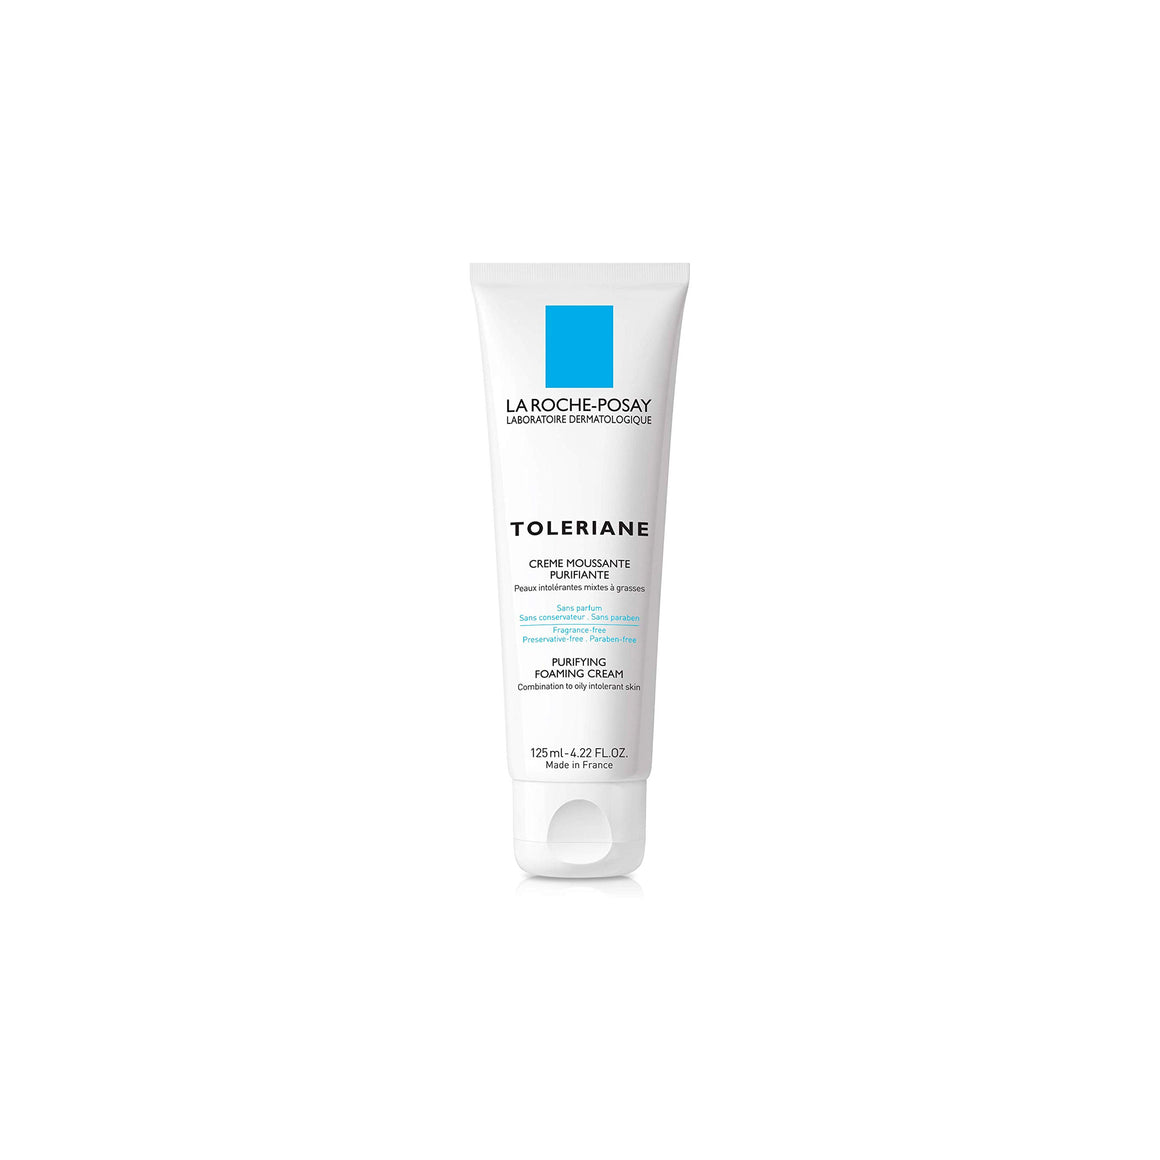 TOLERIANE PURIFYING FOAMING CREAM CLEANSER